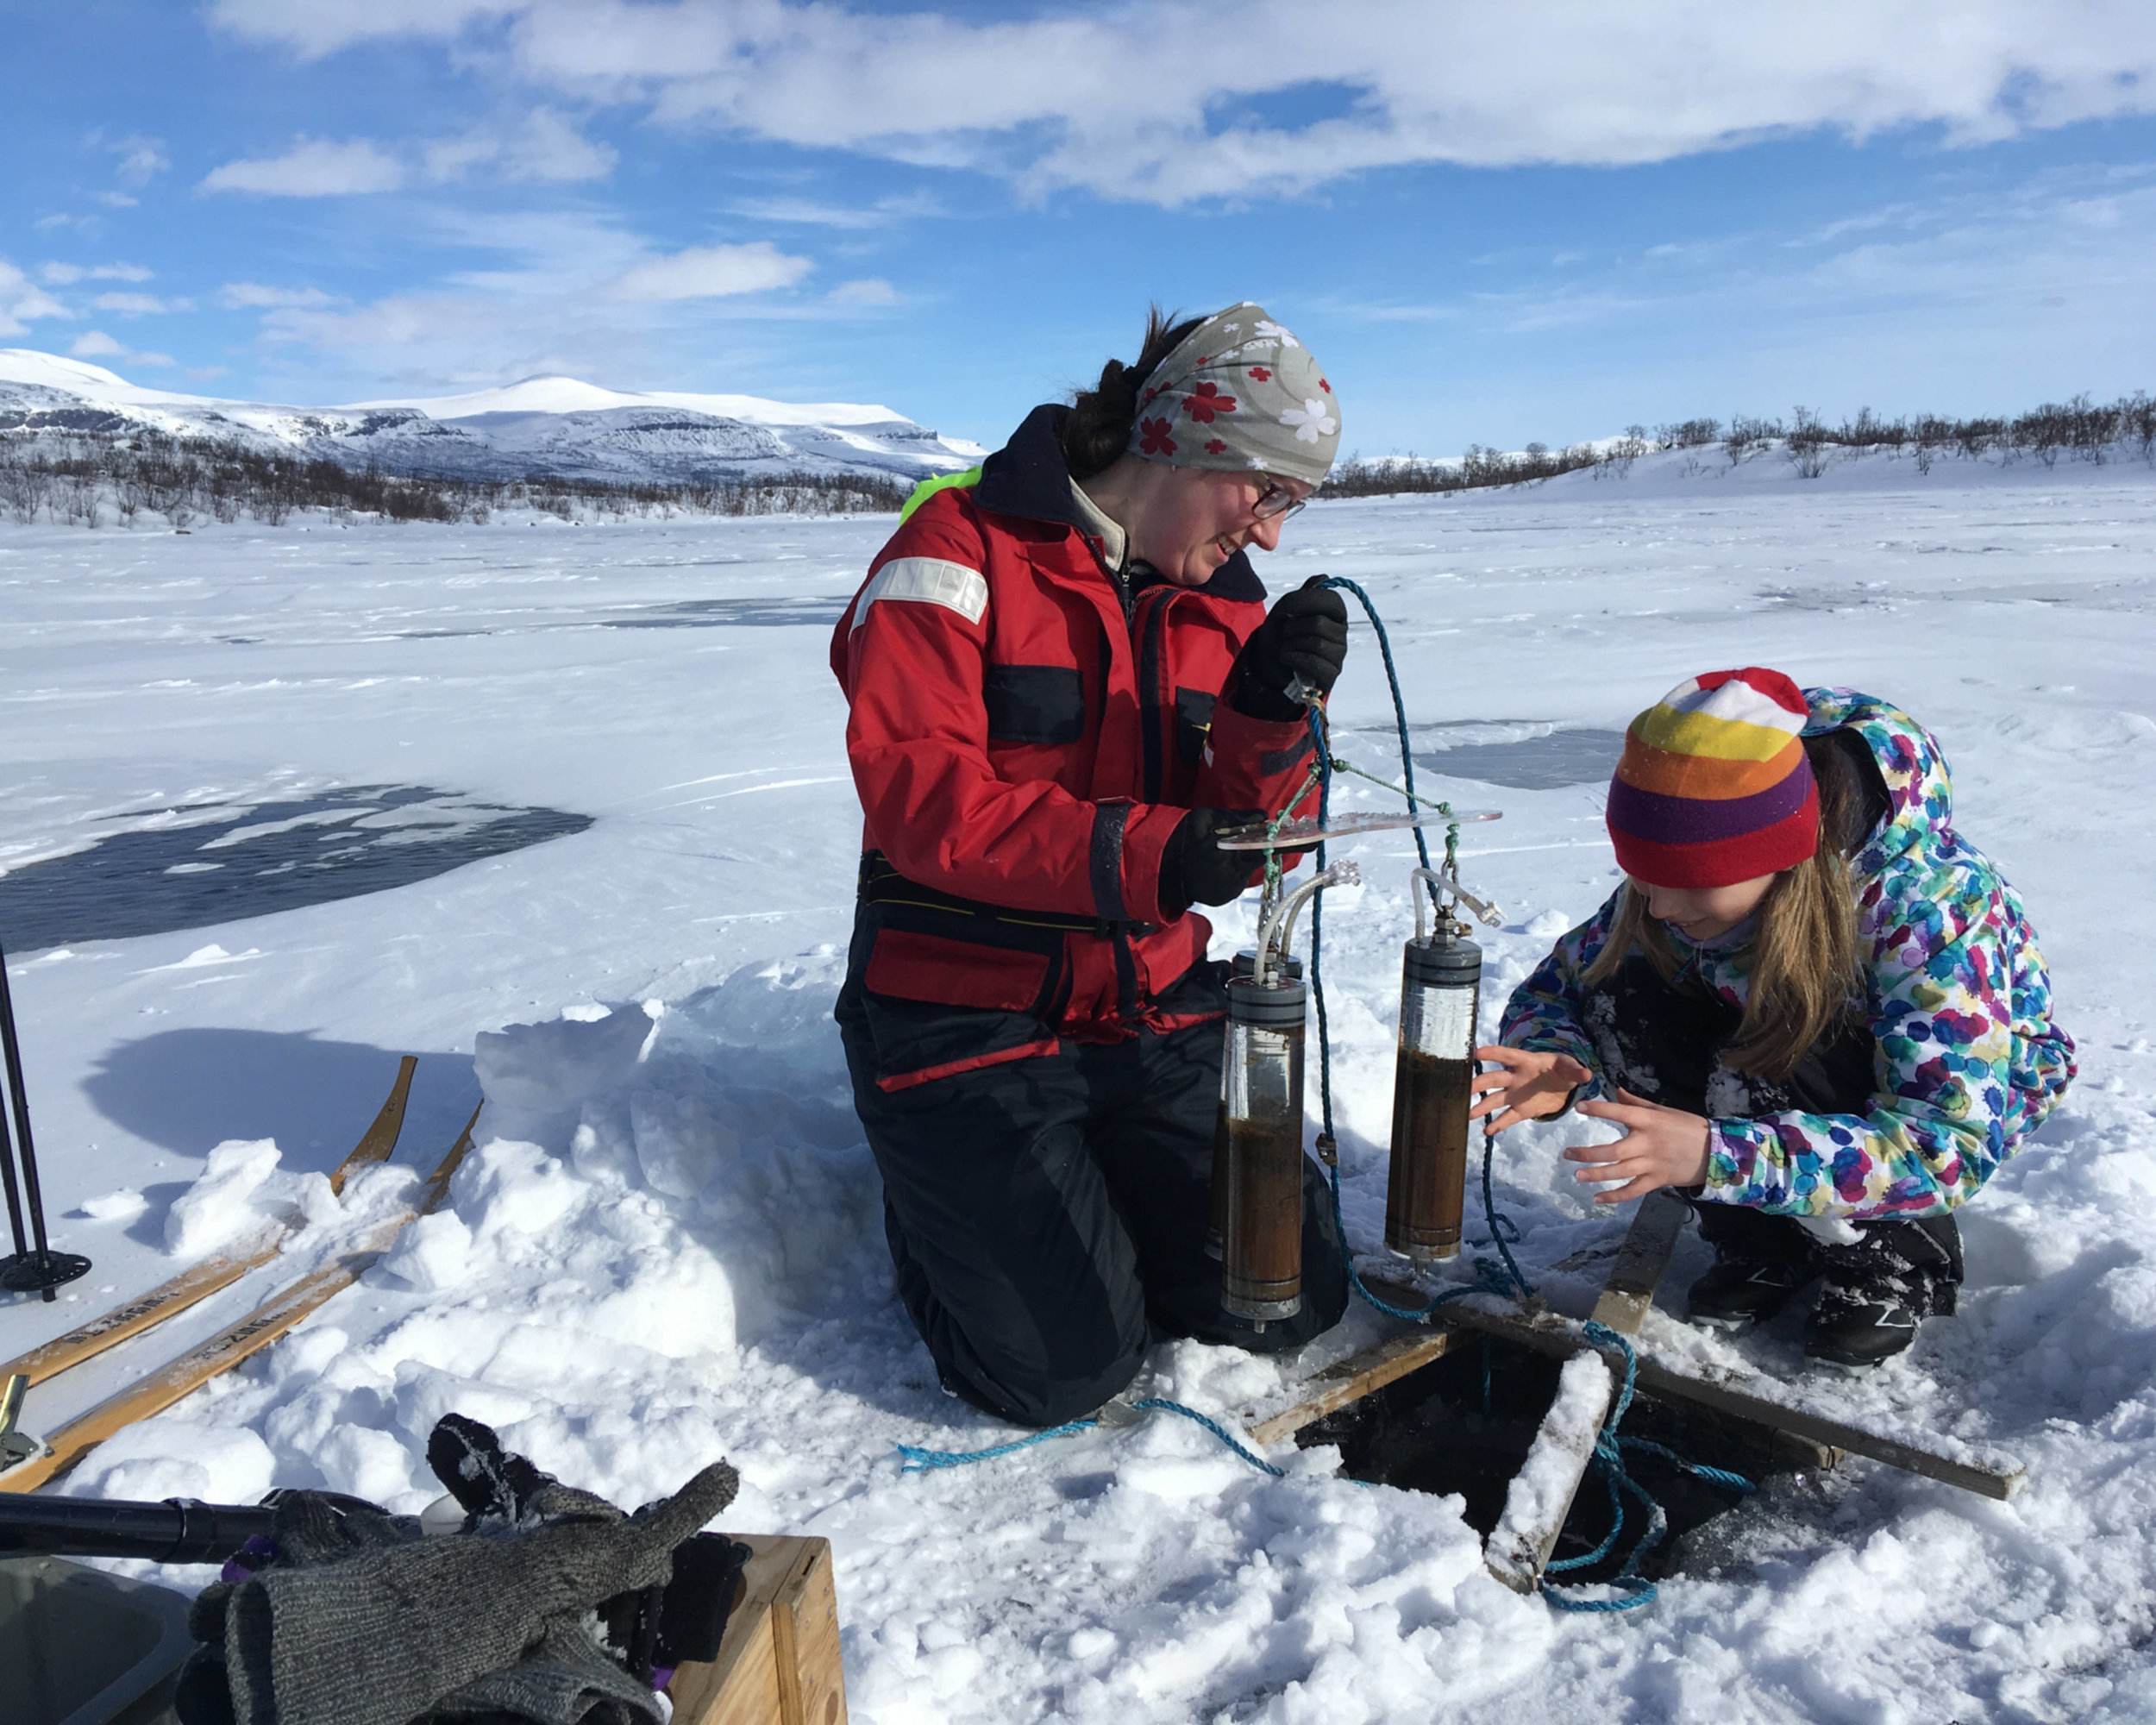 Ice Sampling at Lake Almberga